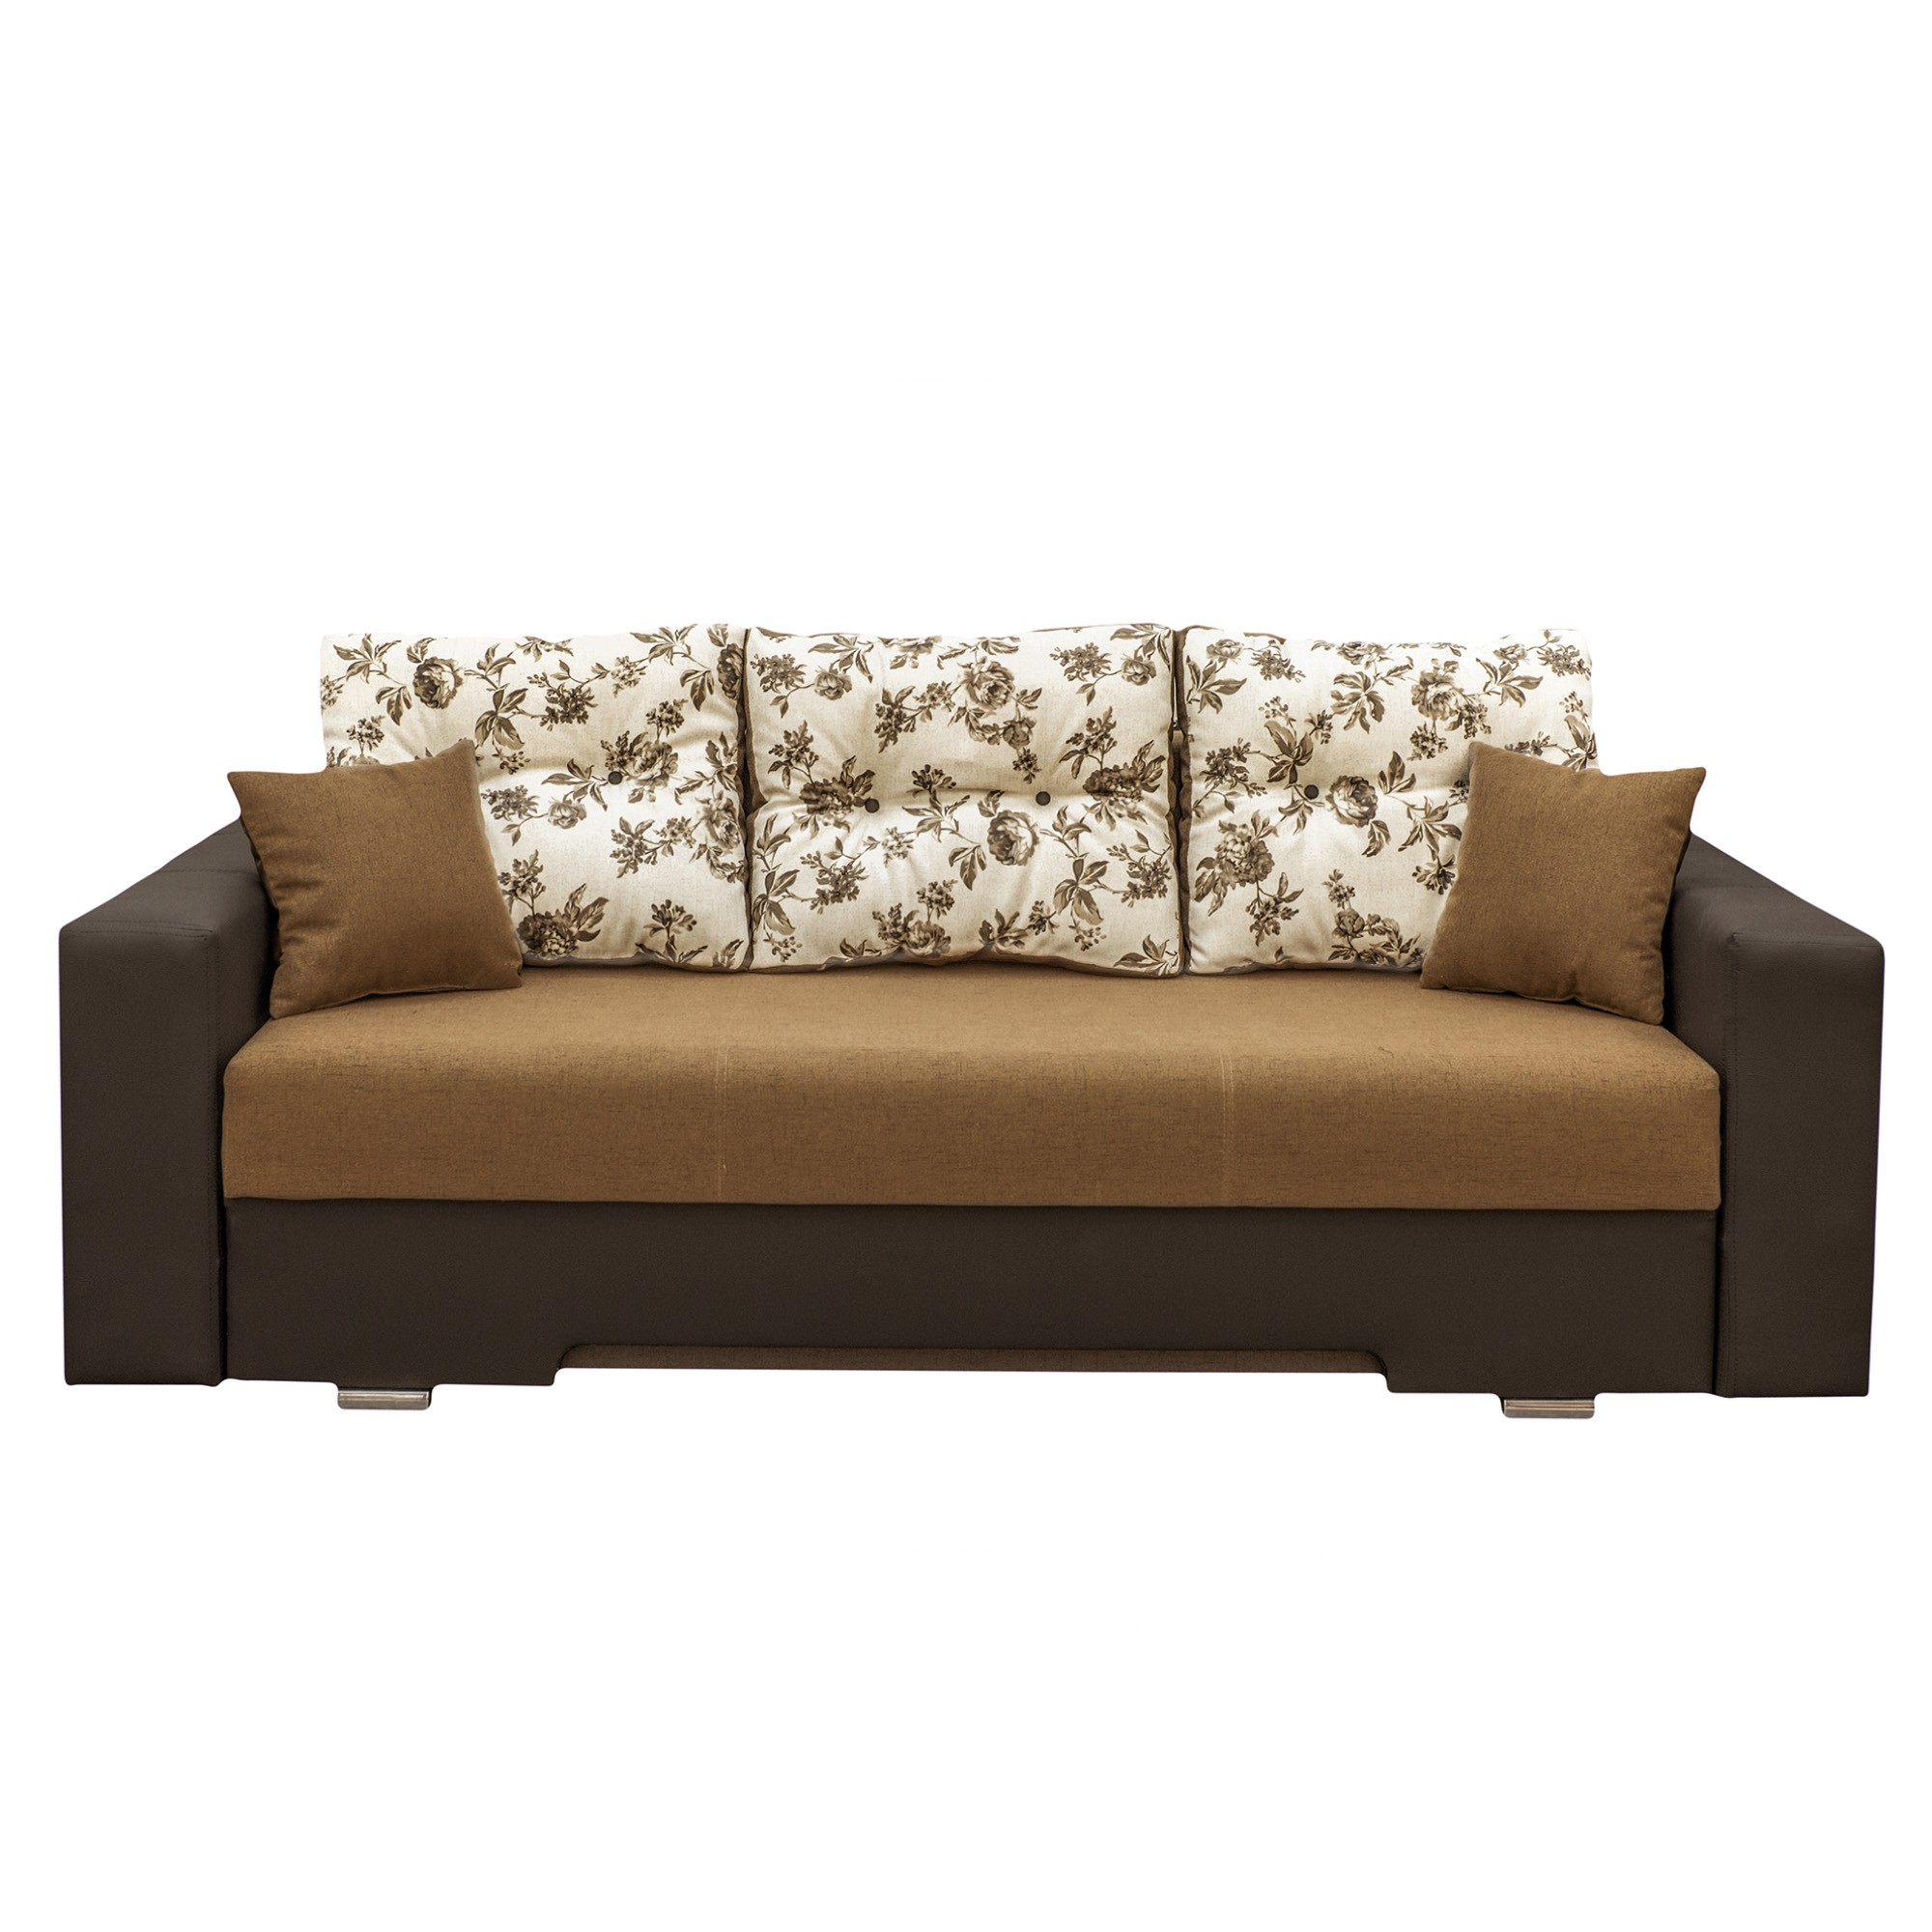 Olx Divani Divani Canapele Sofa Iasi Review Home Co